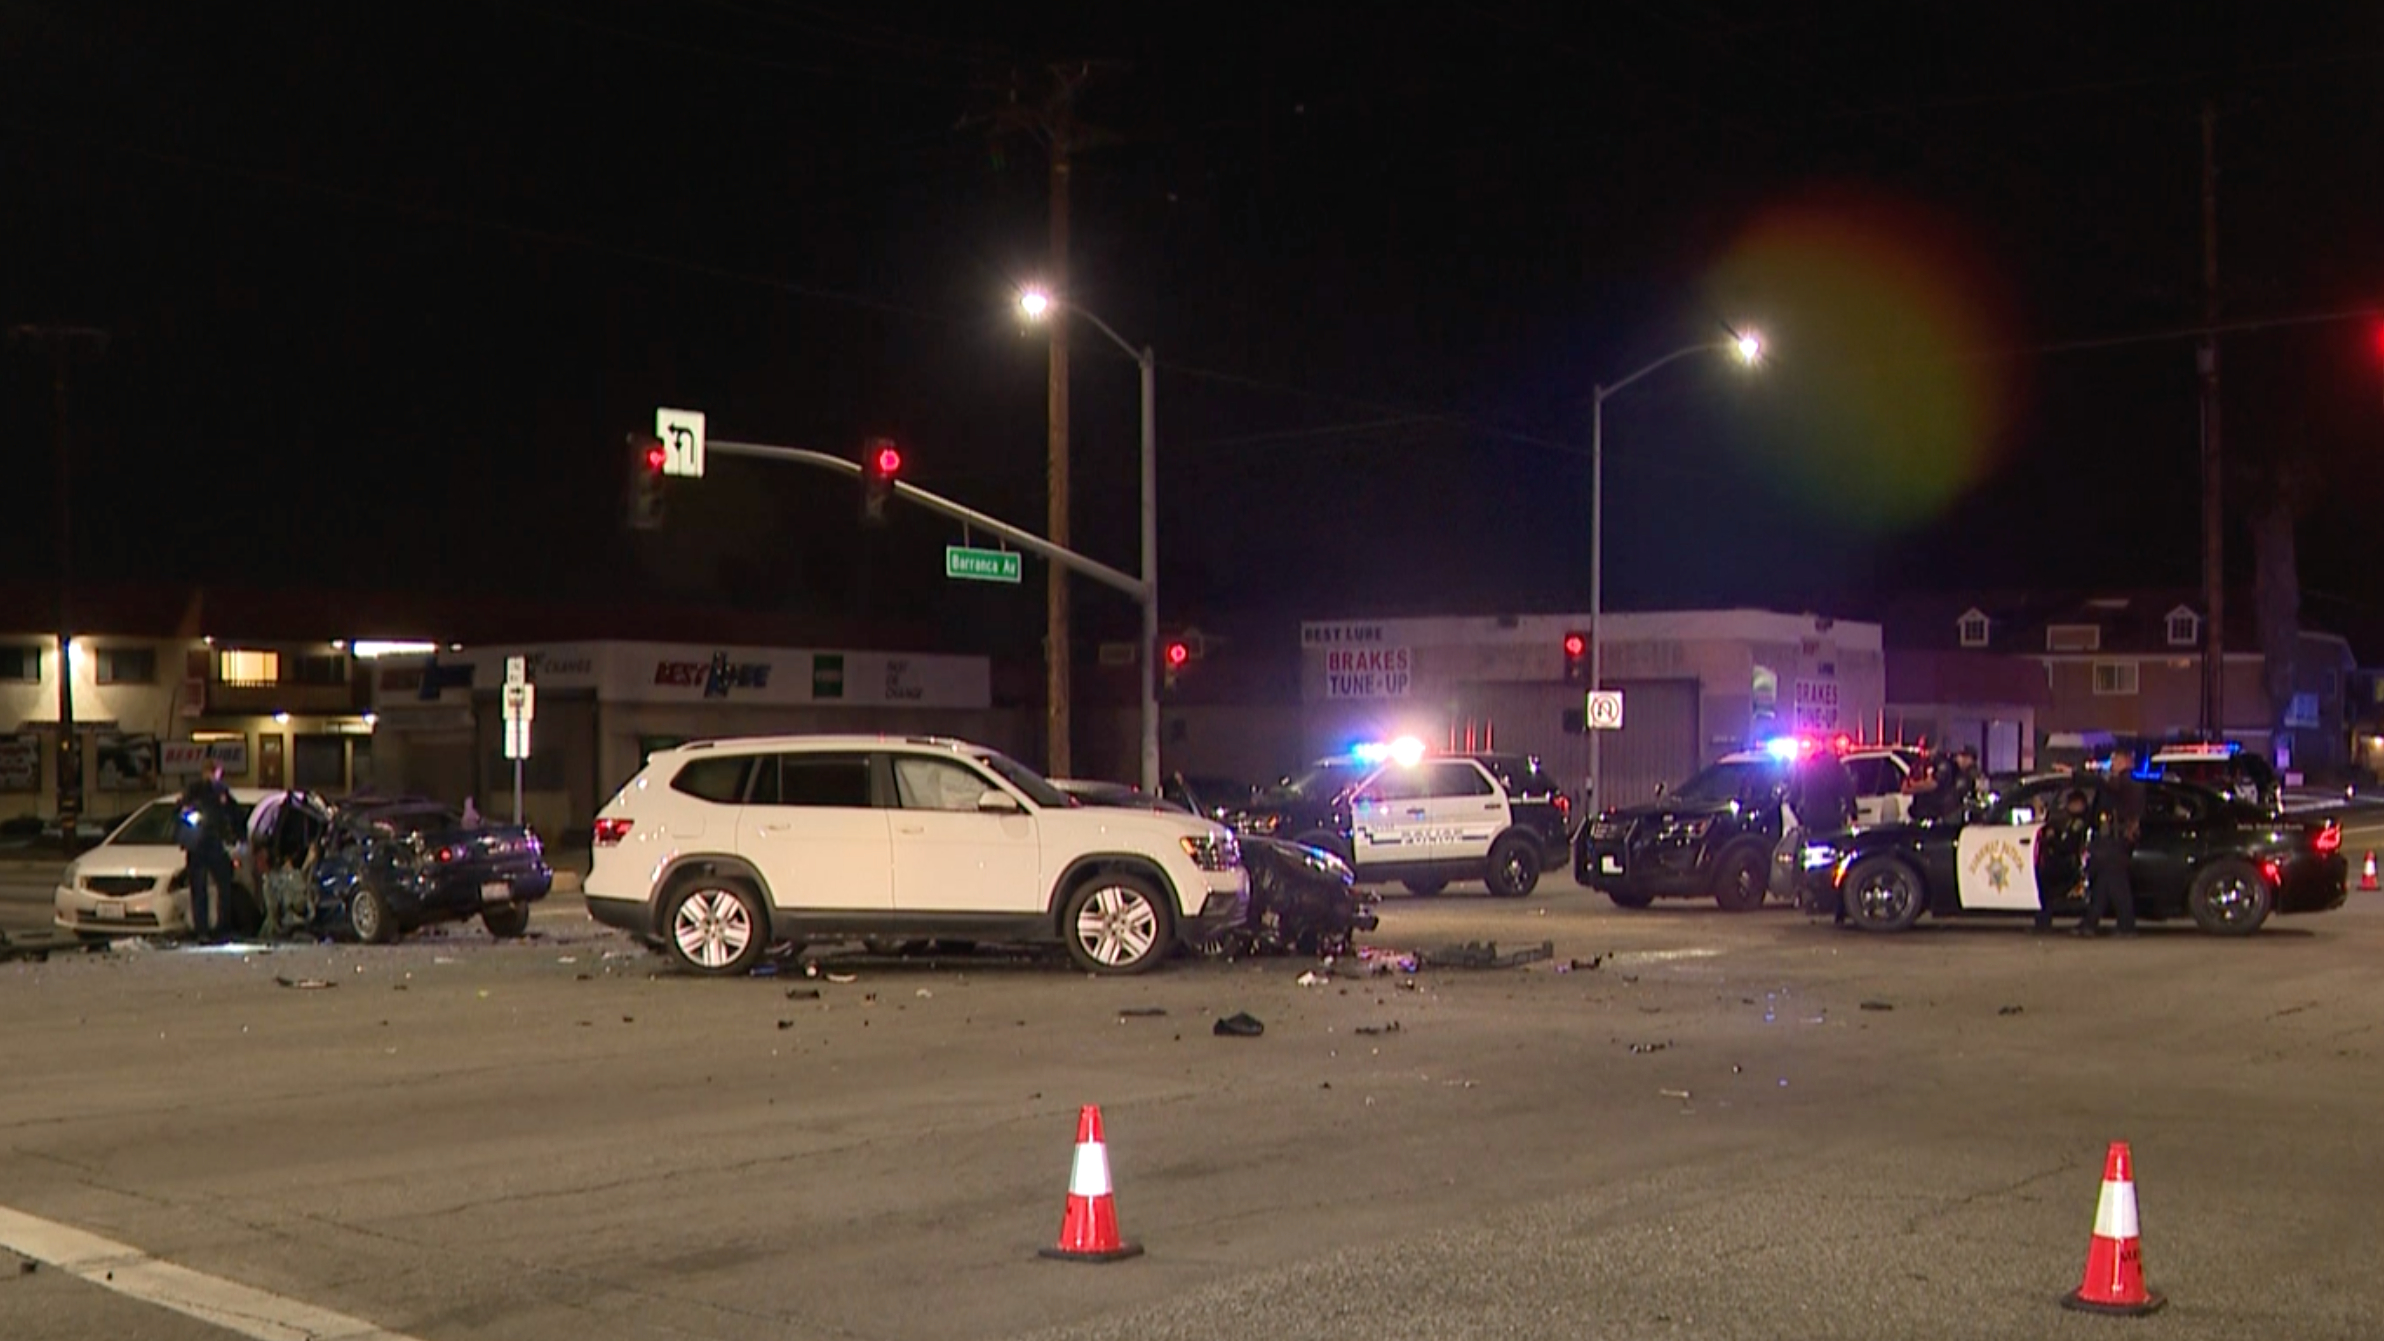 Authorities investigate the scene of a chain-reaction crash involving a stolen vehicle being chased by police in the Covina area on March 8, 2021. (KTLA)